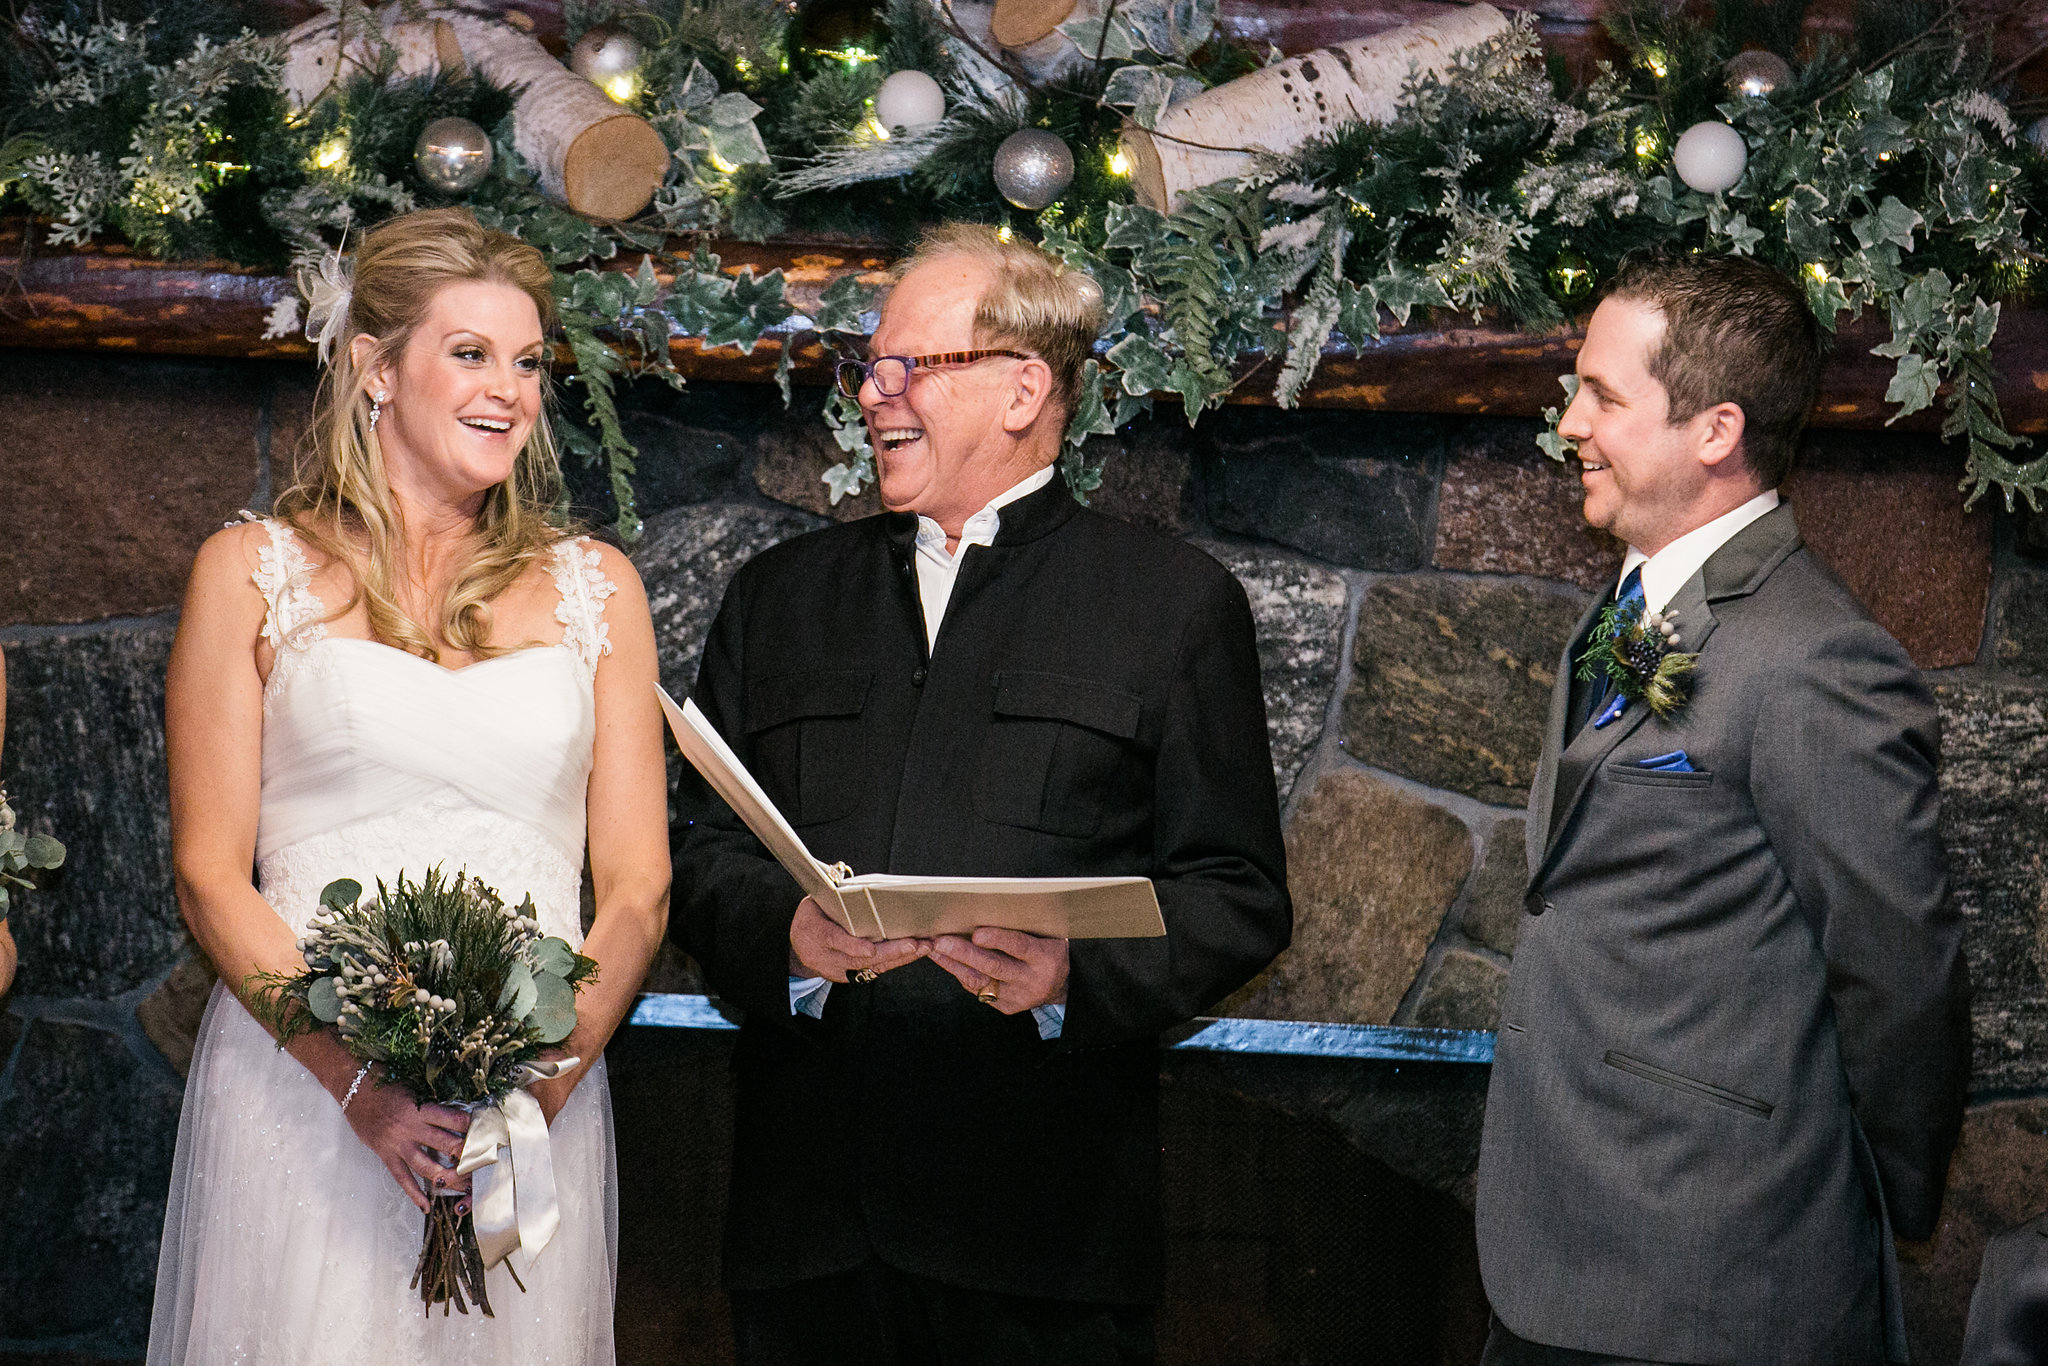 Jeff_Lorene_Wedding_Edmonton_ceremony(16of90).jpg